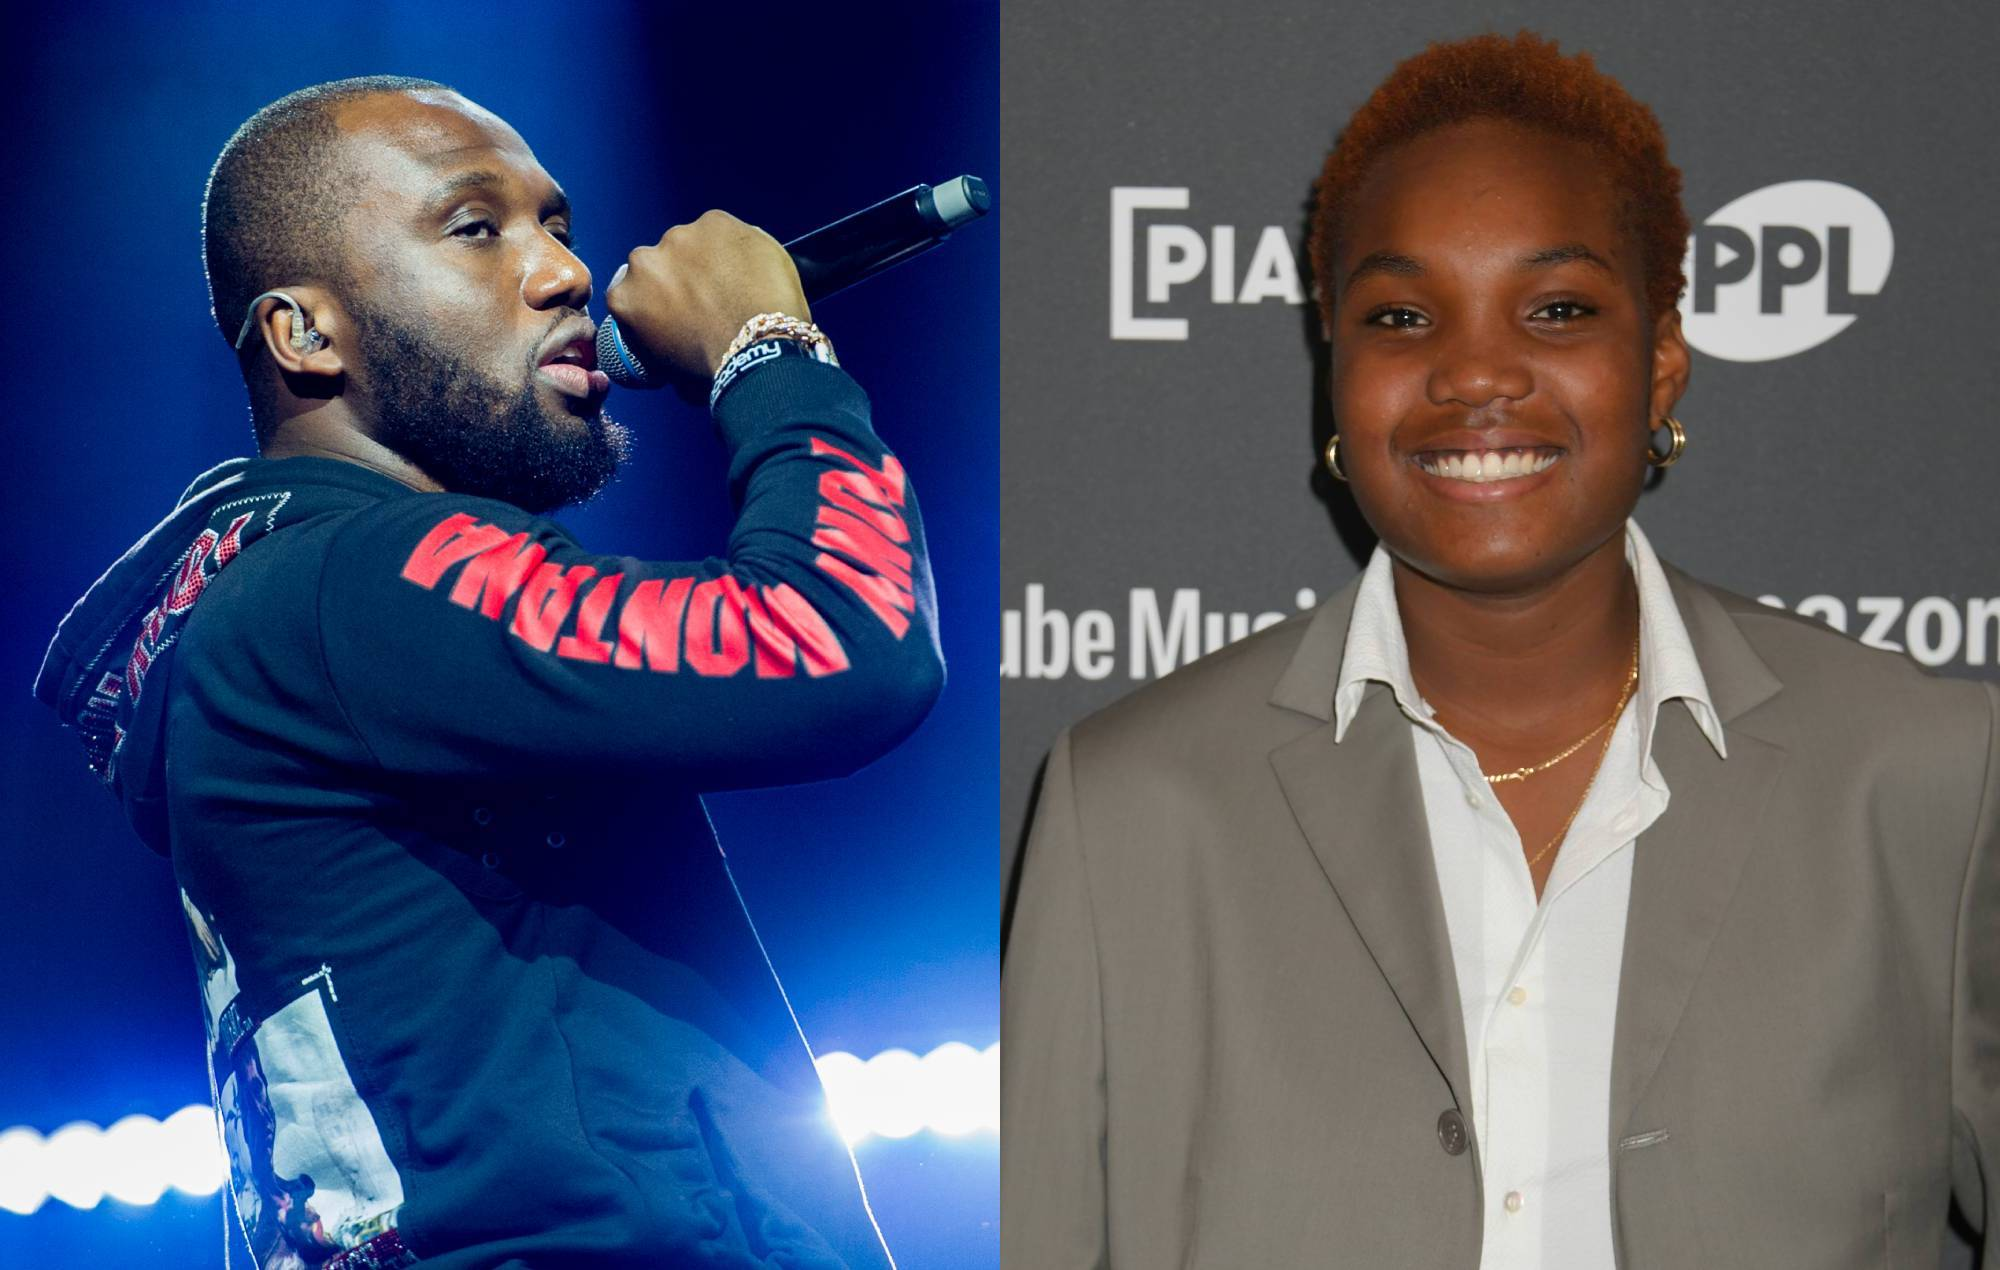 Arlo Parks and Headie One to perform at The BRIT Awards 2021